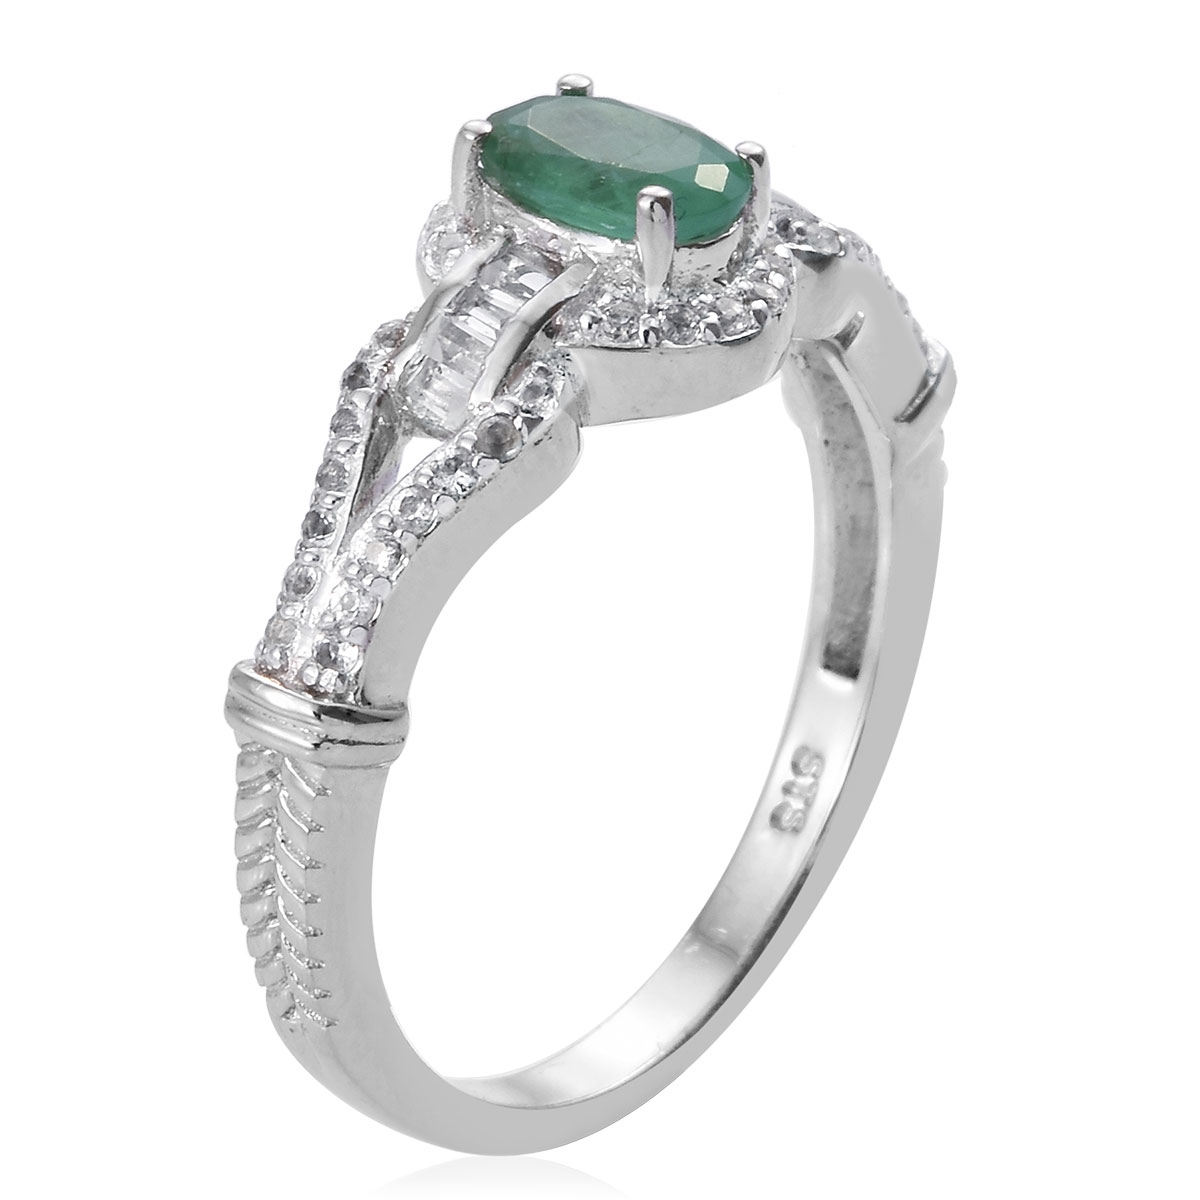 Socoto Emerald, White Topaz Ring in Platinum Over Sterling Silver (Size 5.0) 1.25 ctw